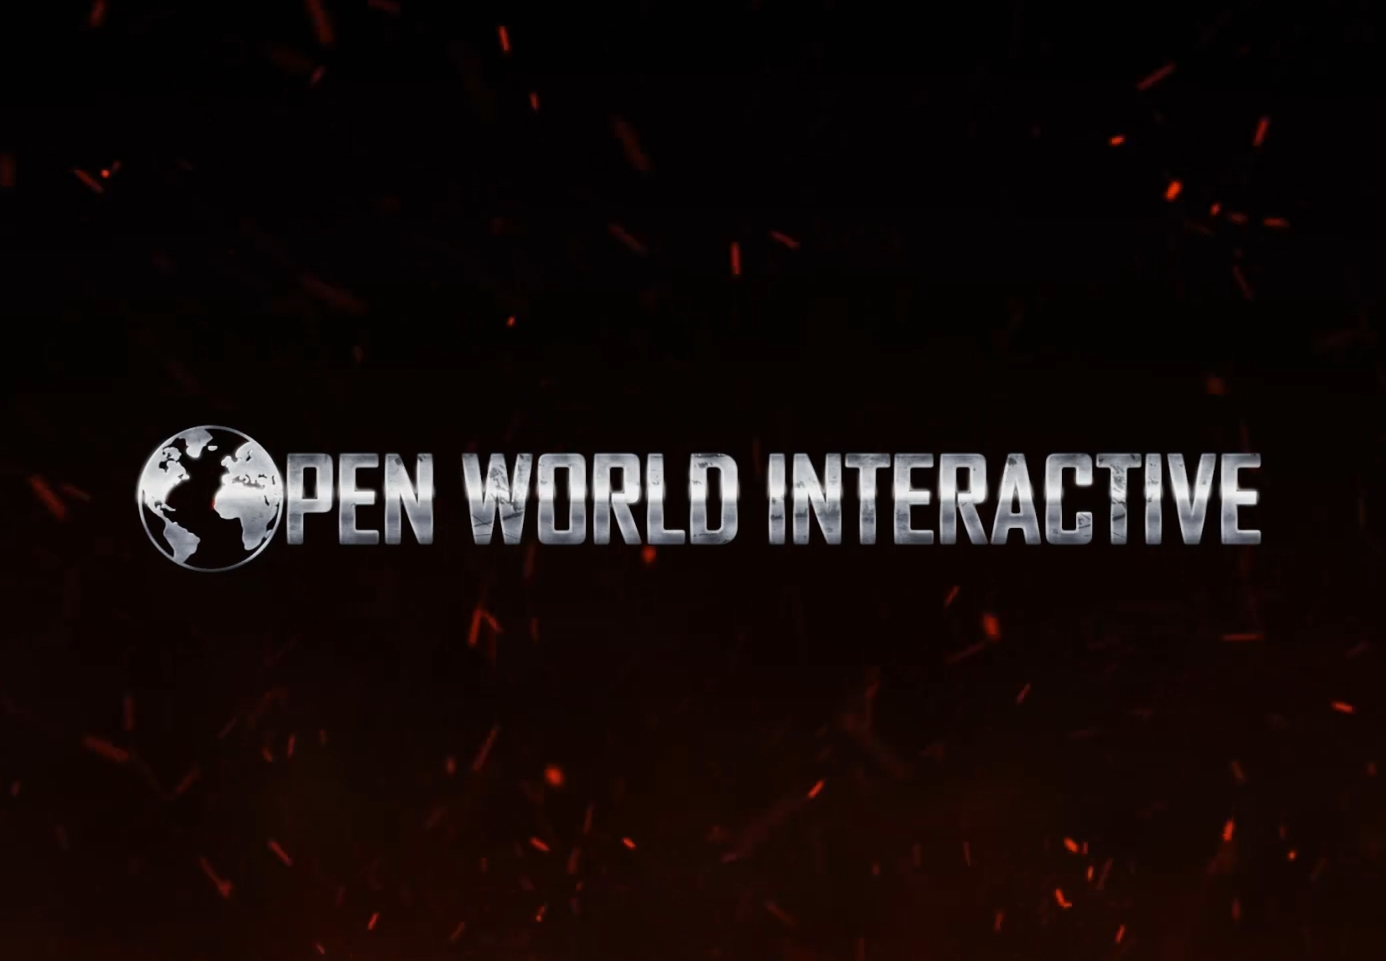 Open World Interactive